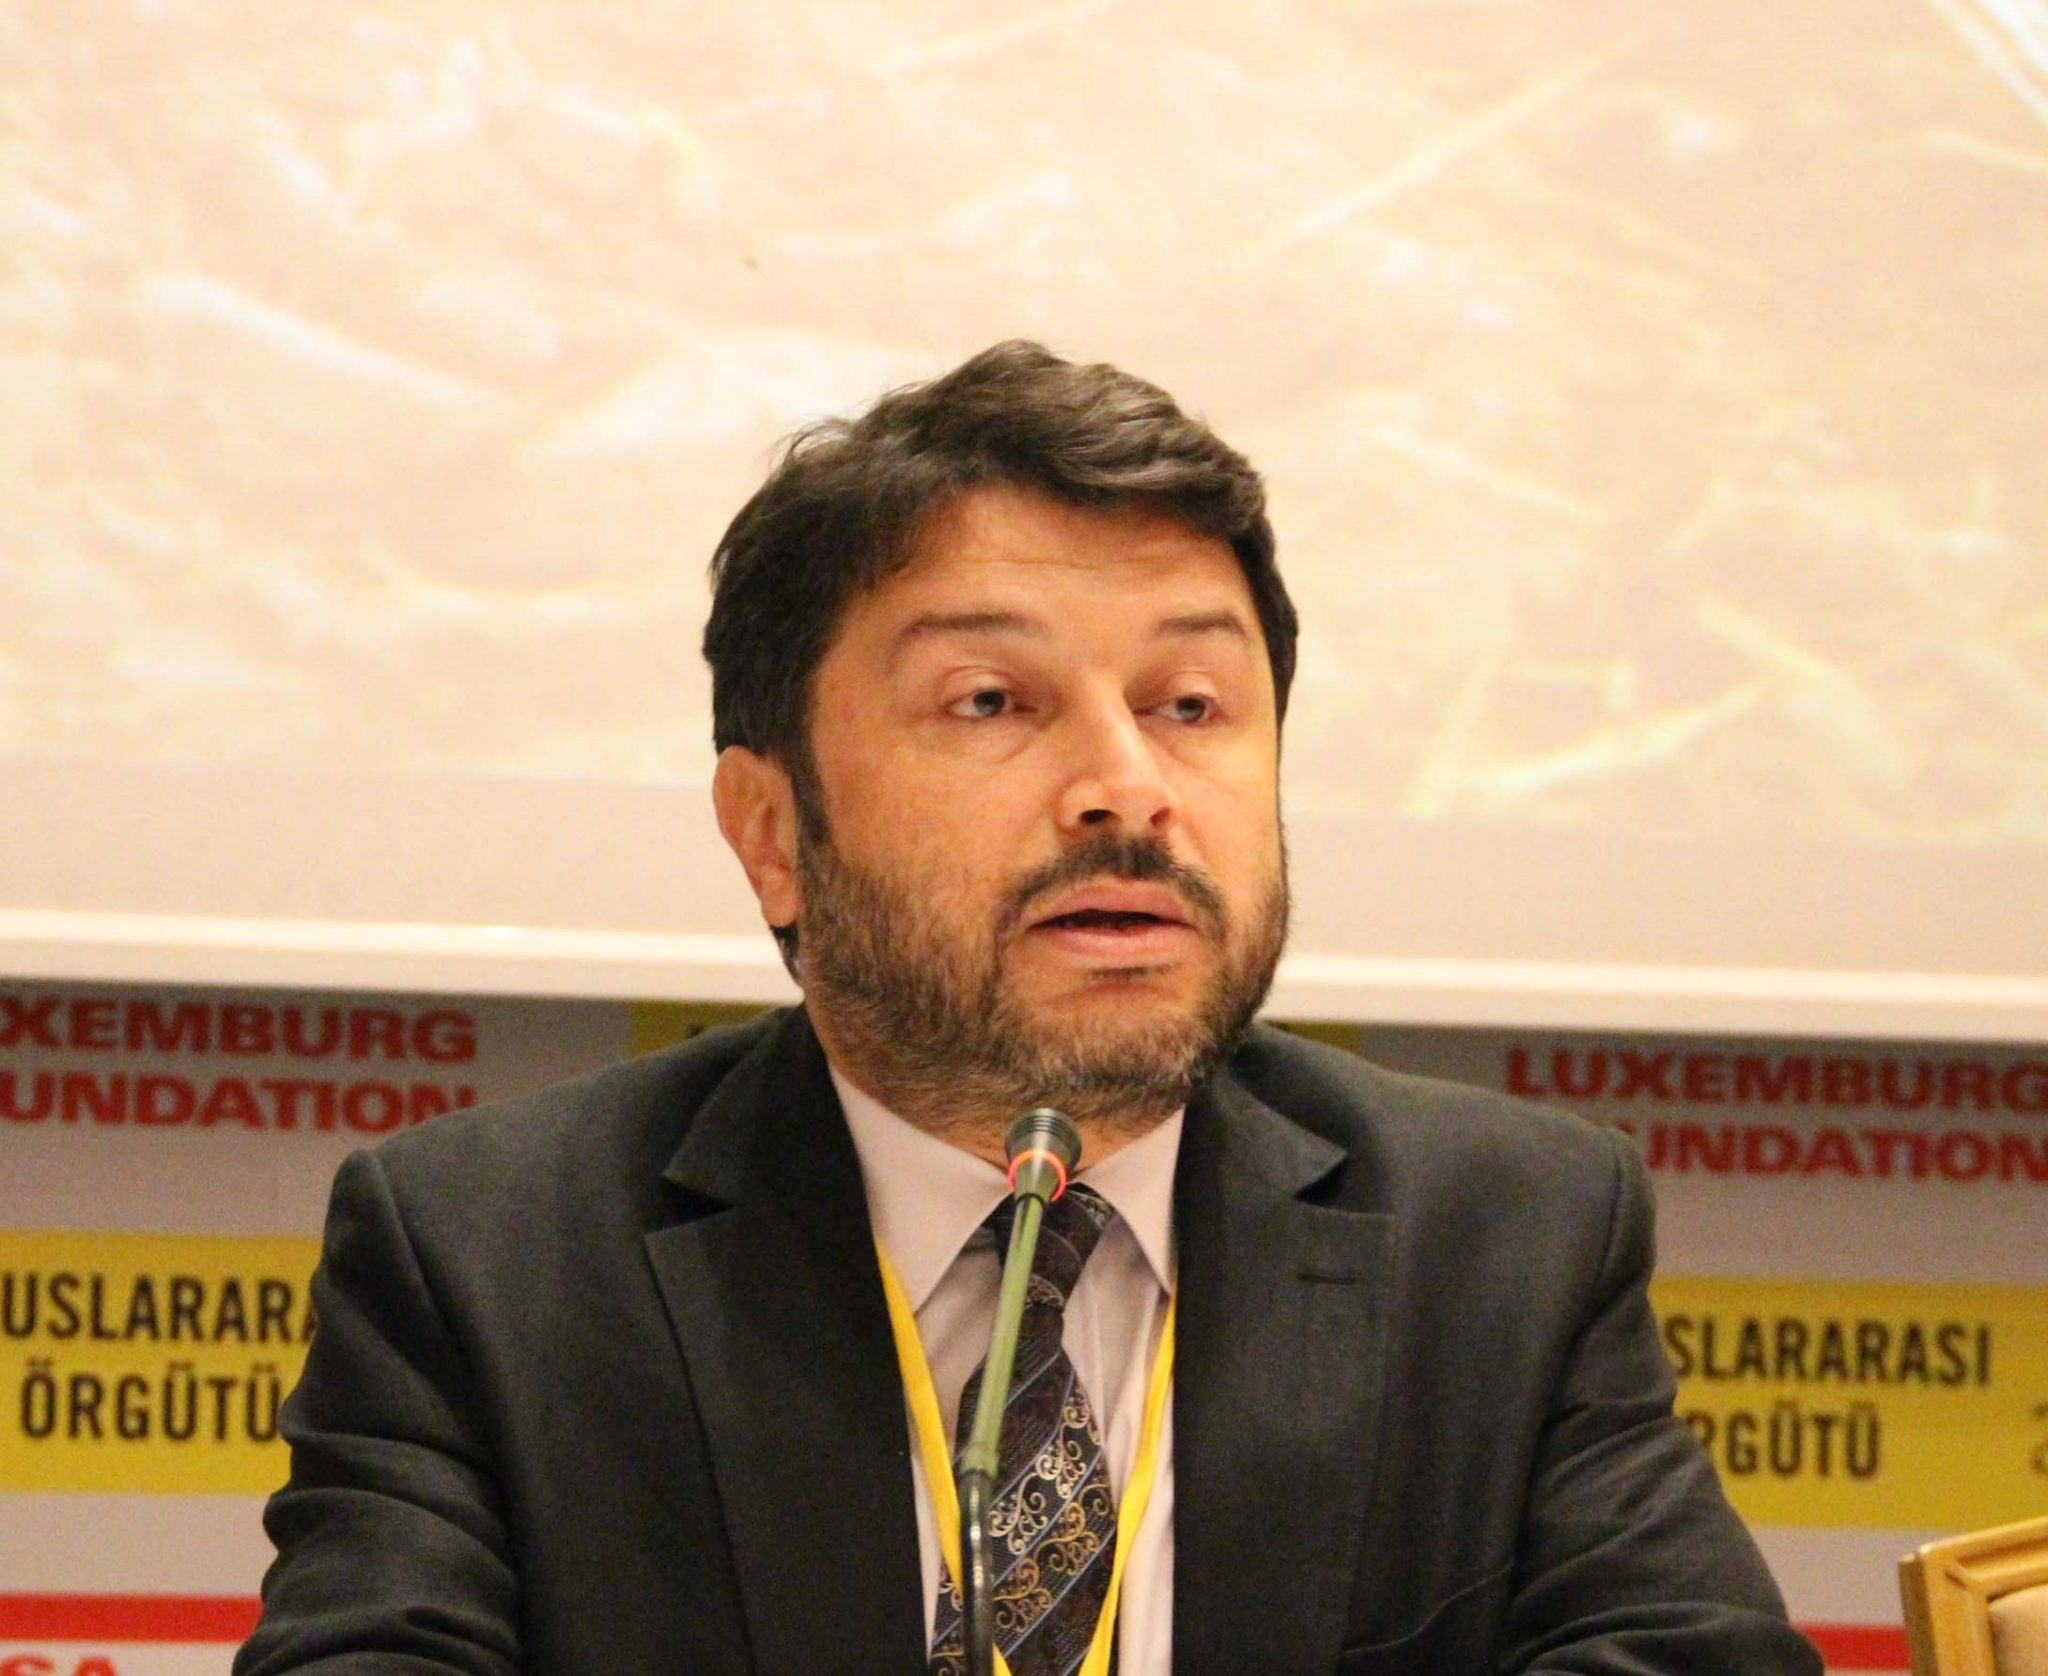 Turkey: drop the charges against Chair of Amnesty International Turkey and release him immediately